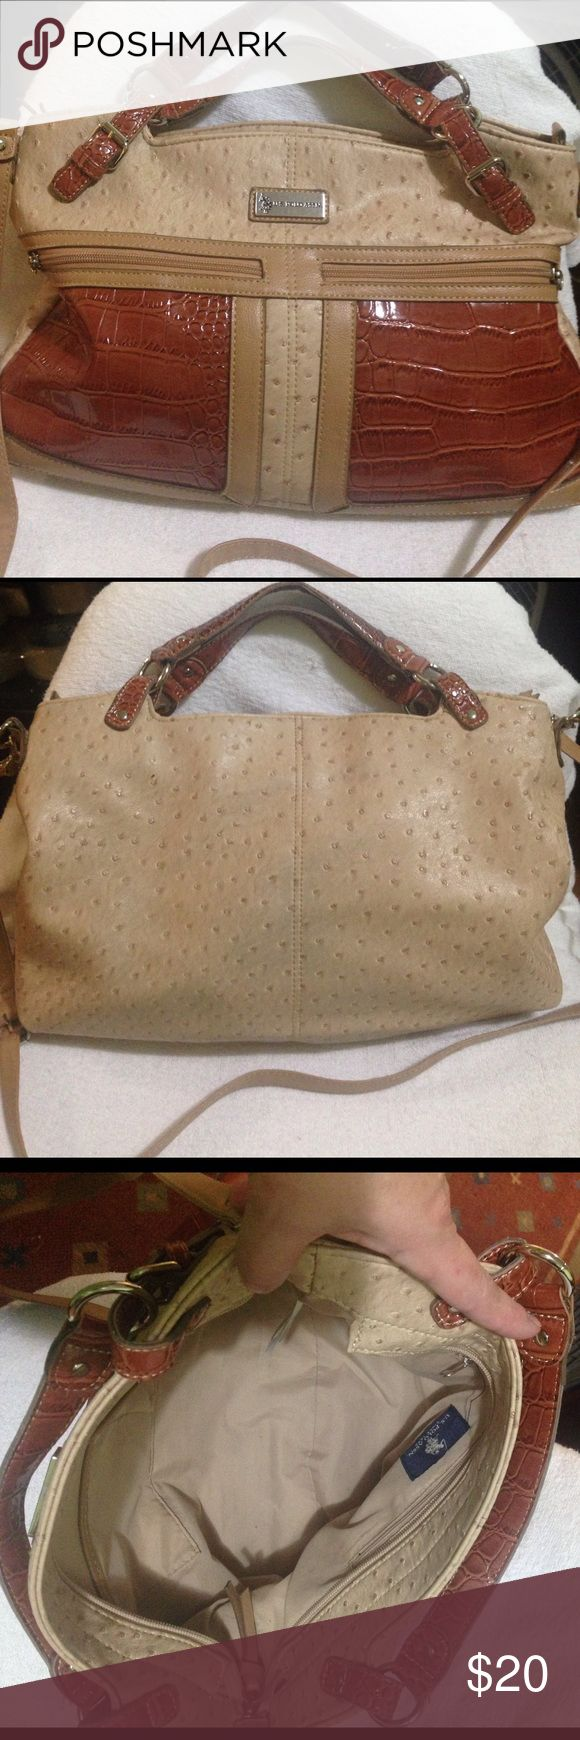 """U.S.. POLO ASSN Large Handbag Tote In gently used condition, this is a gorgeous bag. Faux ostrich leather. Clean inside and out with the exception of one very tiny mark, and some slight marks on back of bag. Tried to picture but I don't think camera could pick  it up to see it. U removed the tassels from the front pockets months ago because I didn't like the way they looked. Still fully functional. Comes with removable, adjustable strap(23""""-25"""") U.S. Polo Assn. Bags Totes"""